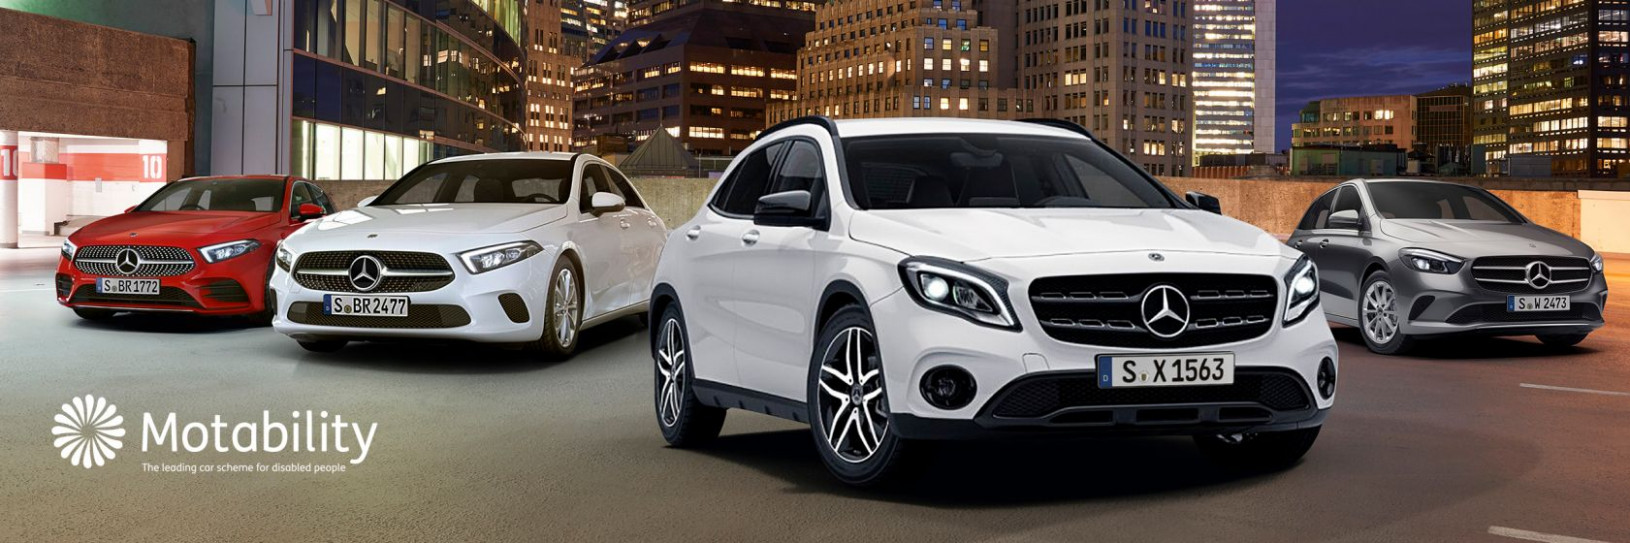 Motability Cars - Mercedes-Benz Cars UK - mercedes 2020 offers